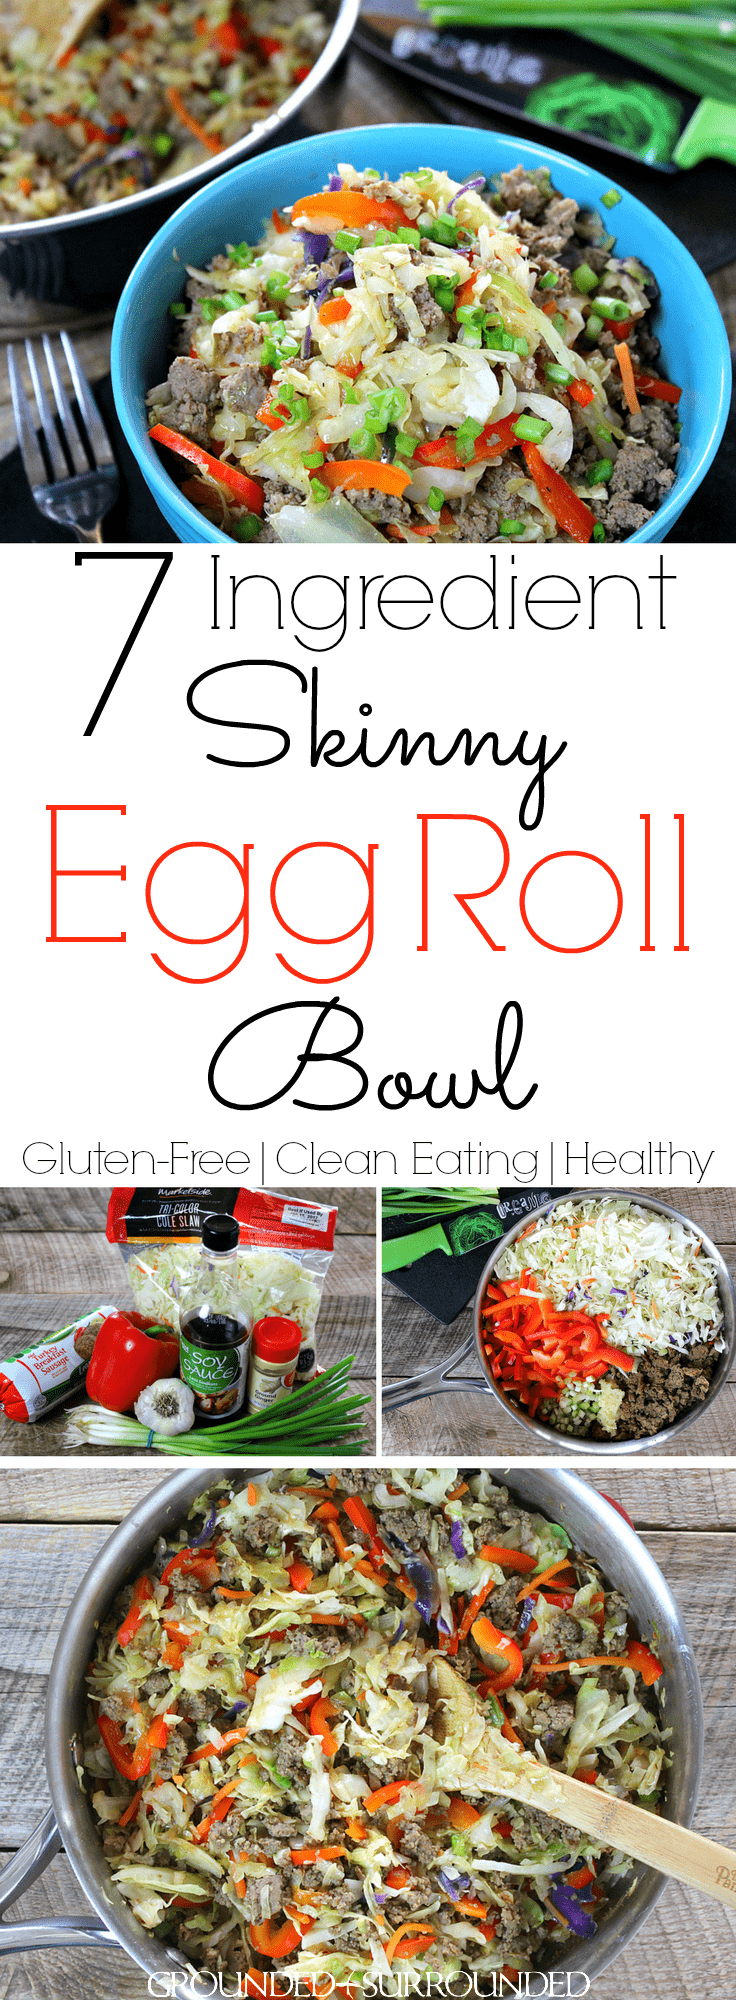 7 Ingredient Skinny Egg Roll Bowl | Chinese food in a bowl is always a winner, but easy and healthy Chinese recipes are even better. This clean eating, vegetable packed, turkey sausage (or pork) eggroll combination is sure to cure any takeout cravings you have. Whether you are following Whole 30, low carb, Weight Watchers, 21 Day Fix, Paleo, or Thm (Trim Healthy Mama), you will love the newest gluten free recipe on the block!